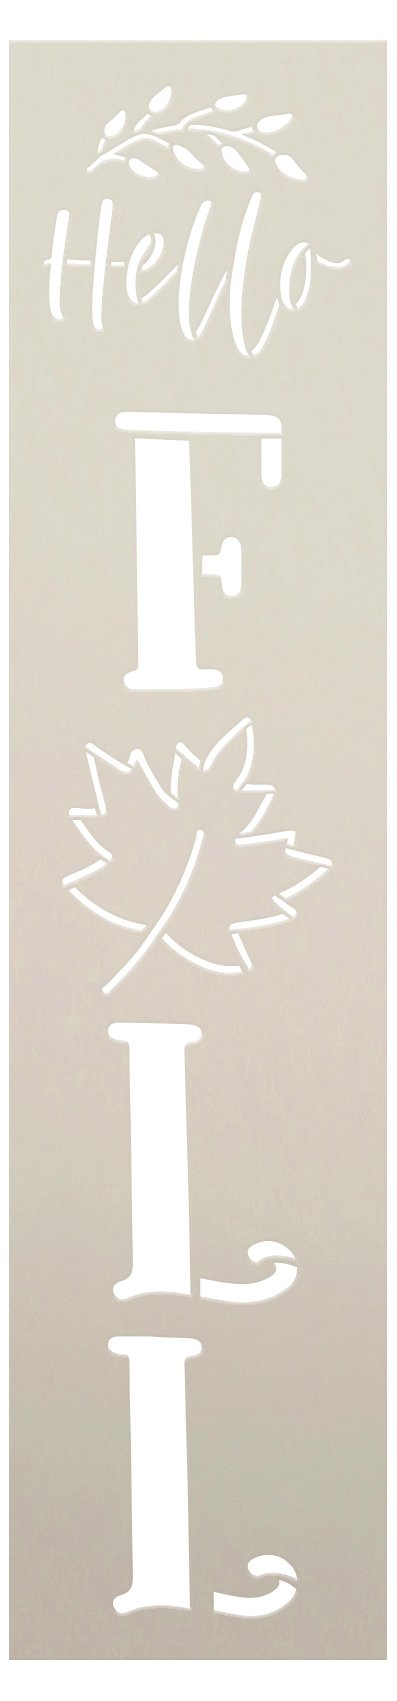 Hello Fall Stencil by StudioR12   DIY Autumn Leaf Porch Leaner Home Decor   Craft & Paint Vertical Wood Sign   Reusable Mylar Template   Select Size